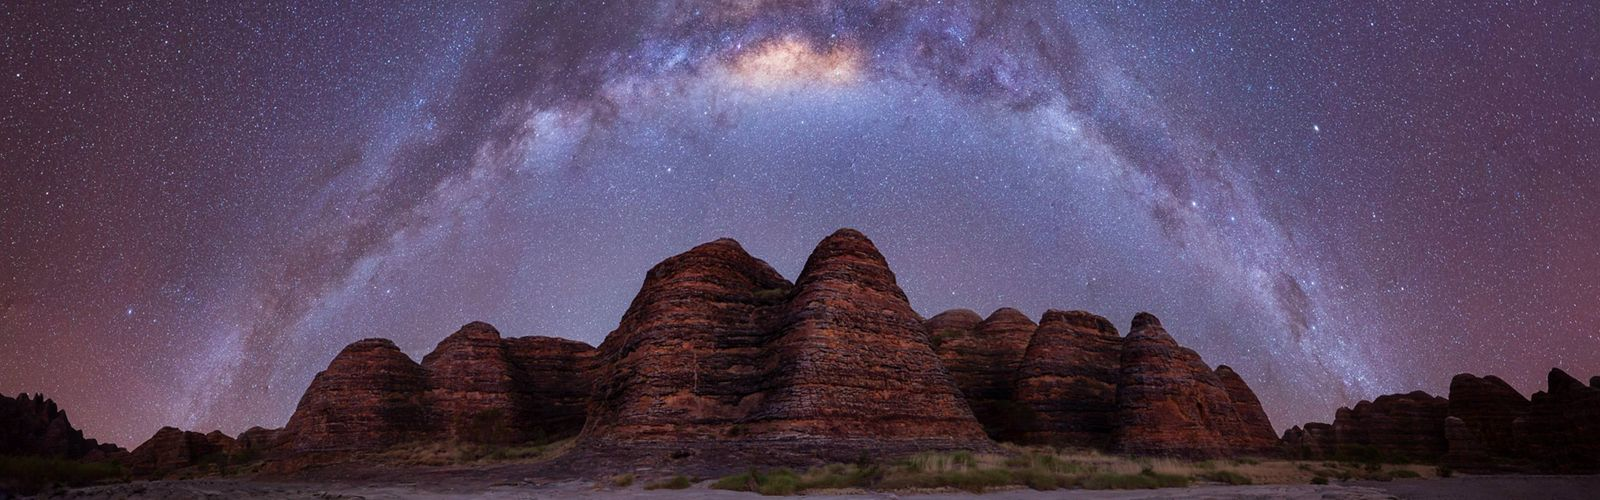 Only silence and the stars at The Bungle Bungle Range, Purnululu National Park, WA